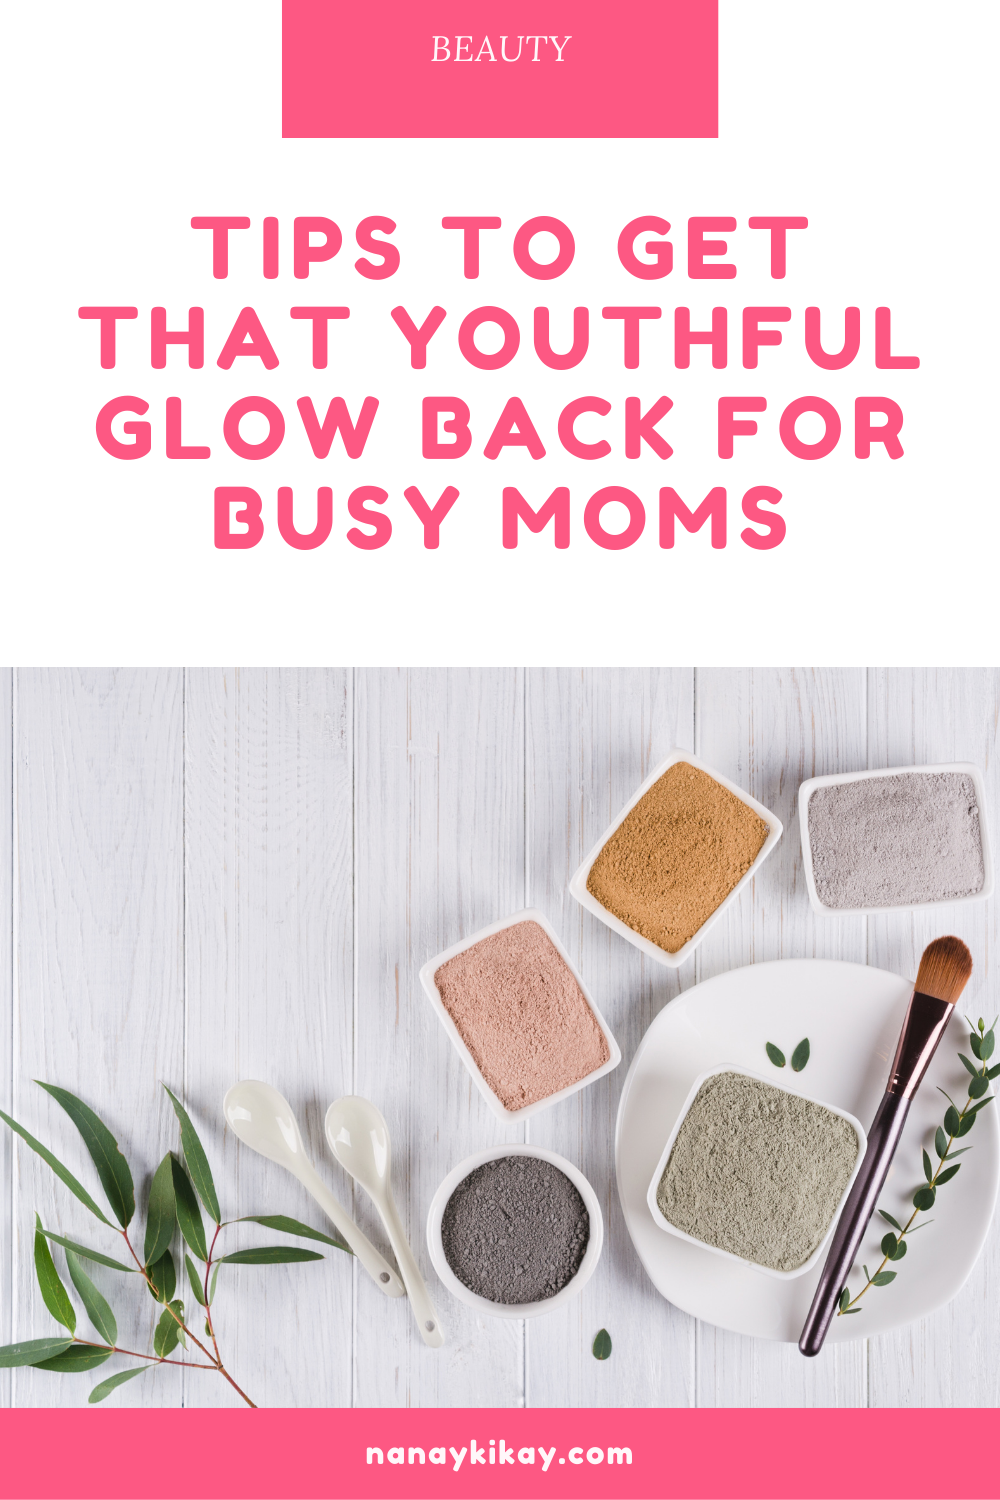 tips to get the youthful glow